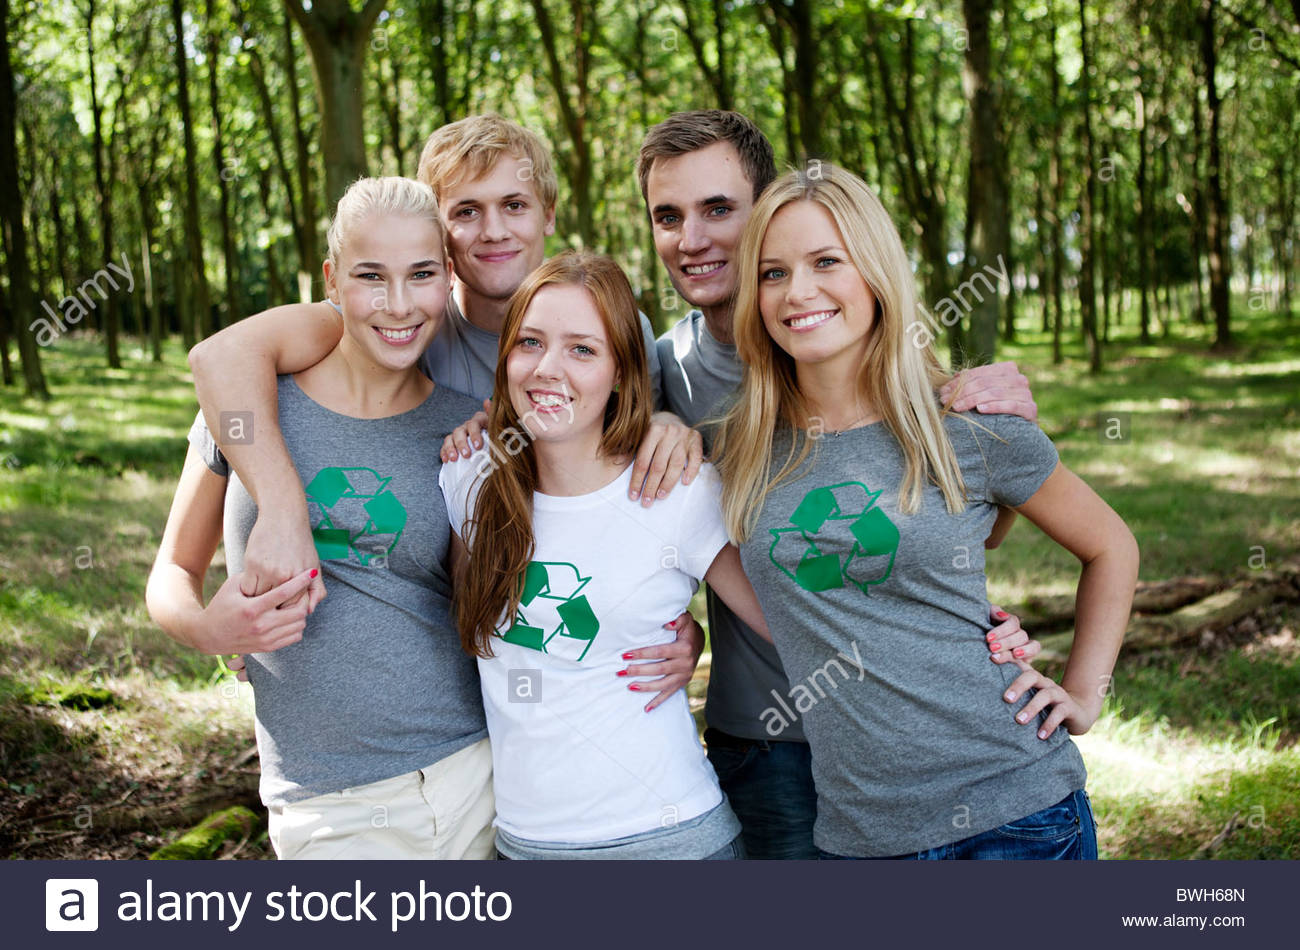 Young persons posing for a group image - Stock Image